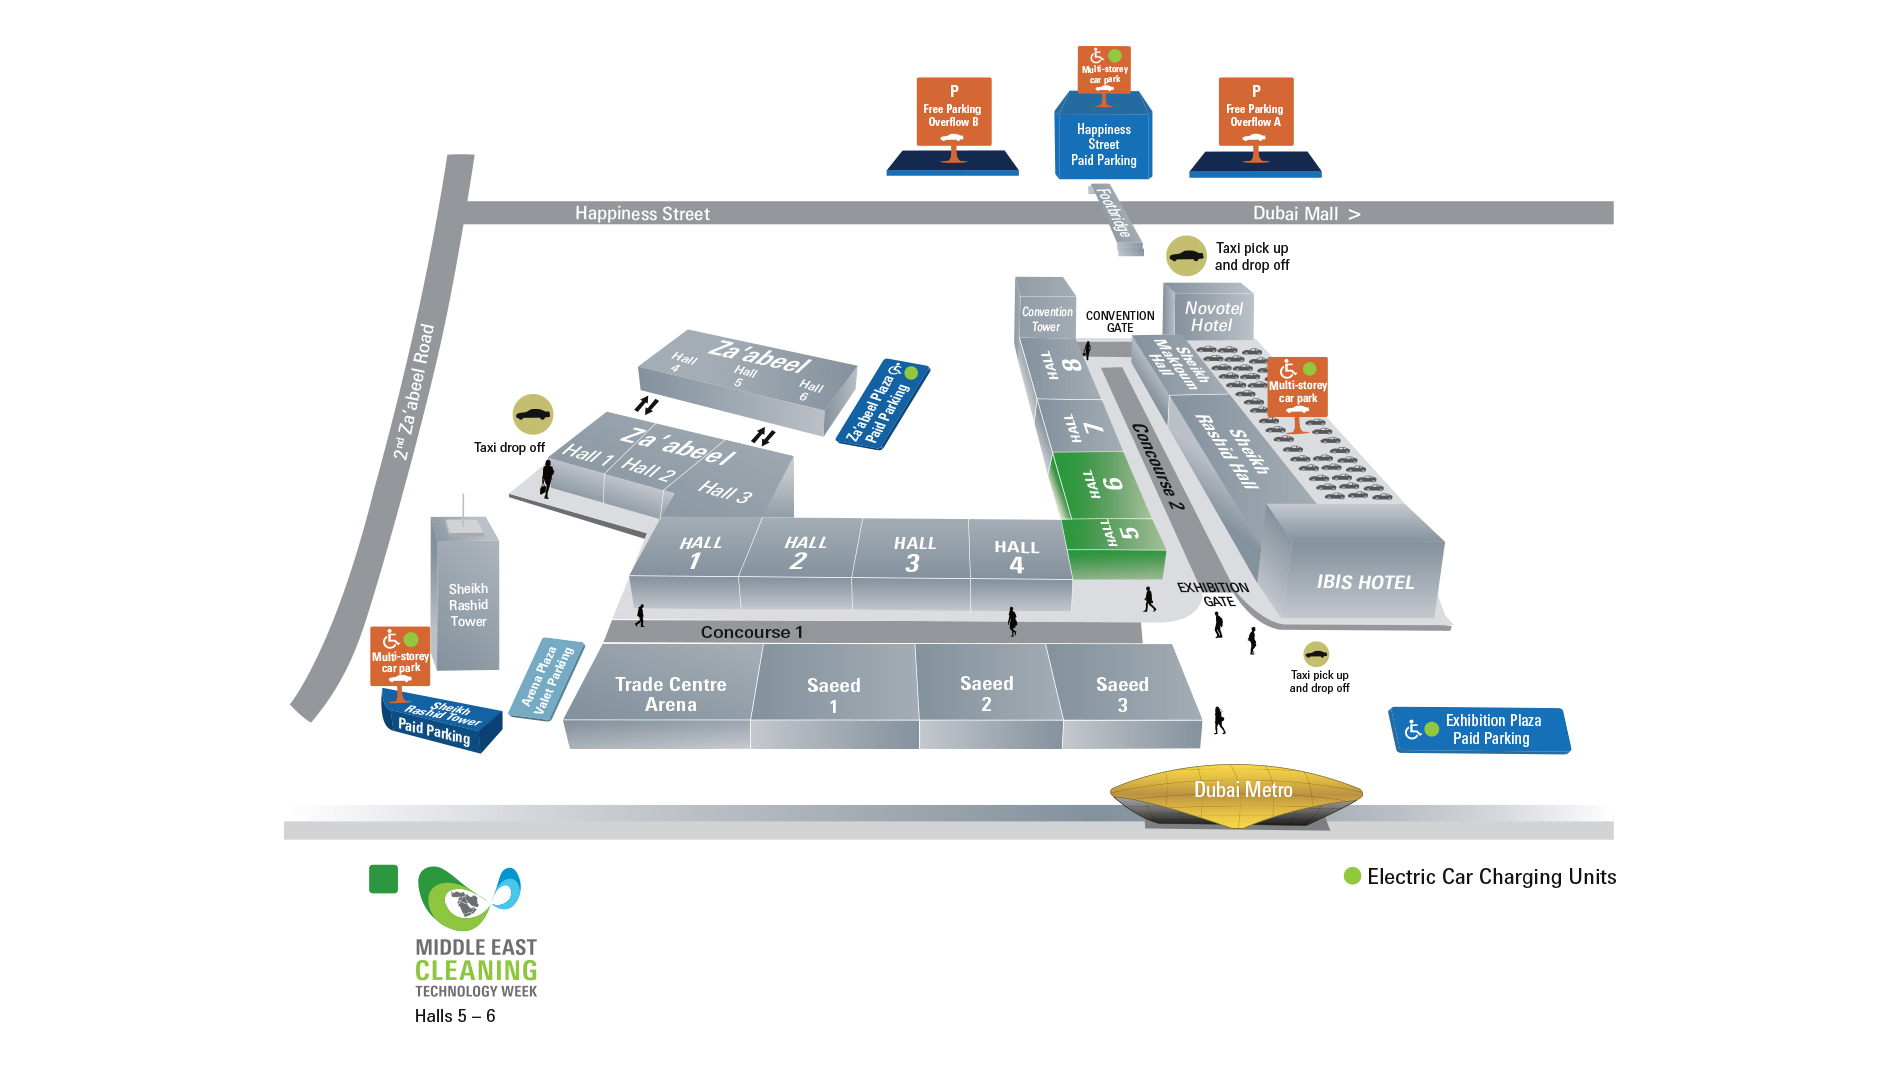 Venue Map Middle East Cleaning Technology Week